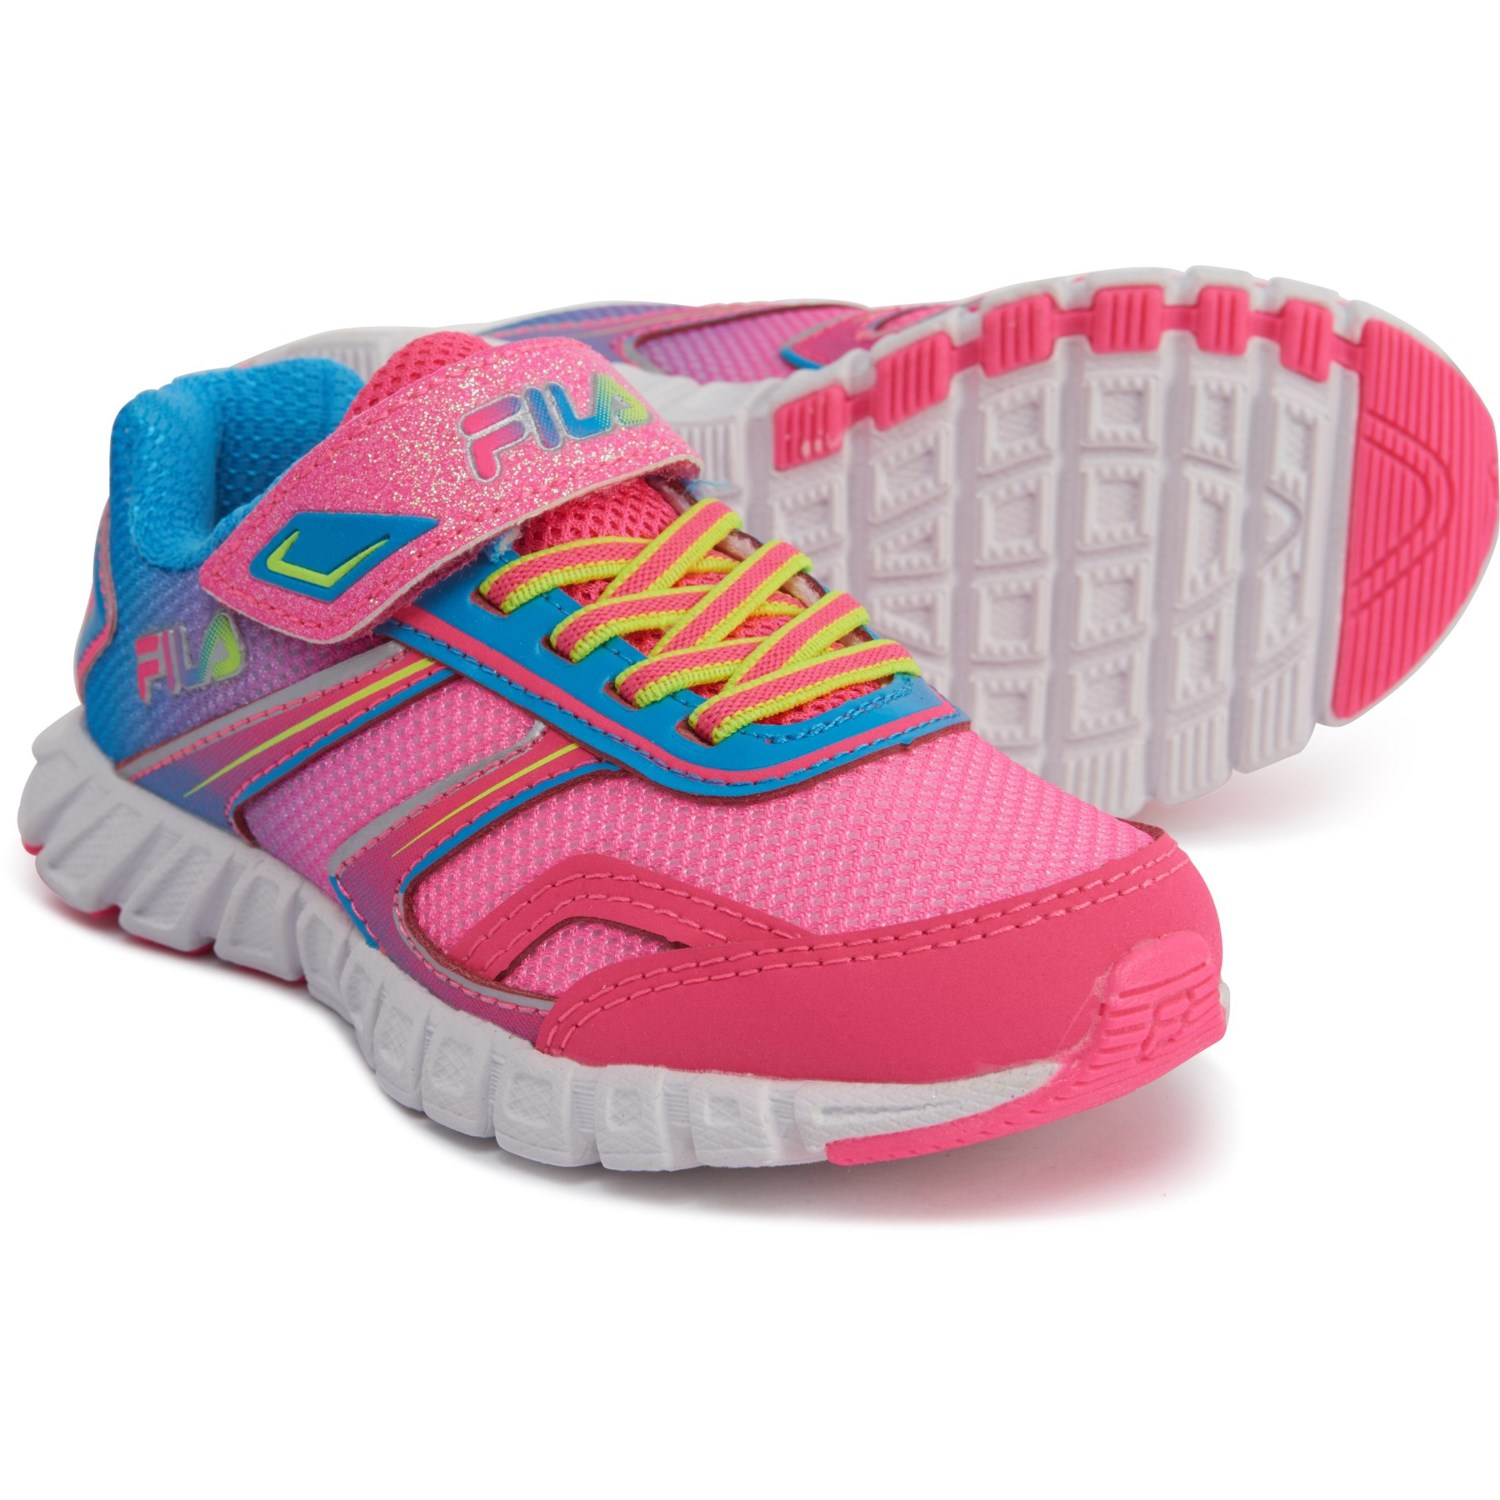 Fila Crater 19 Running Shoes (For Girls) Save 42%